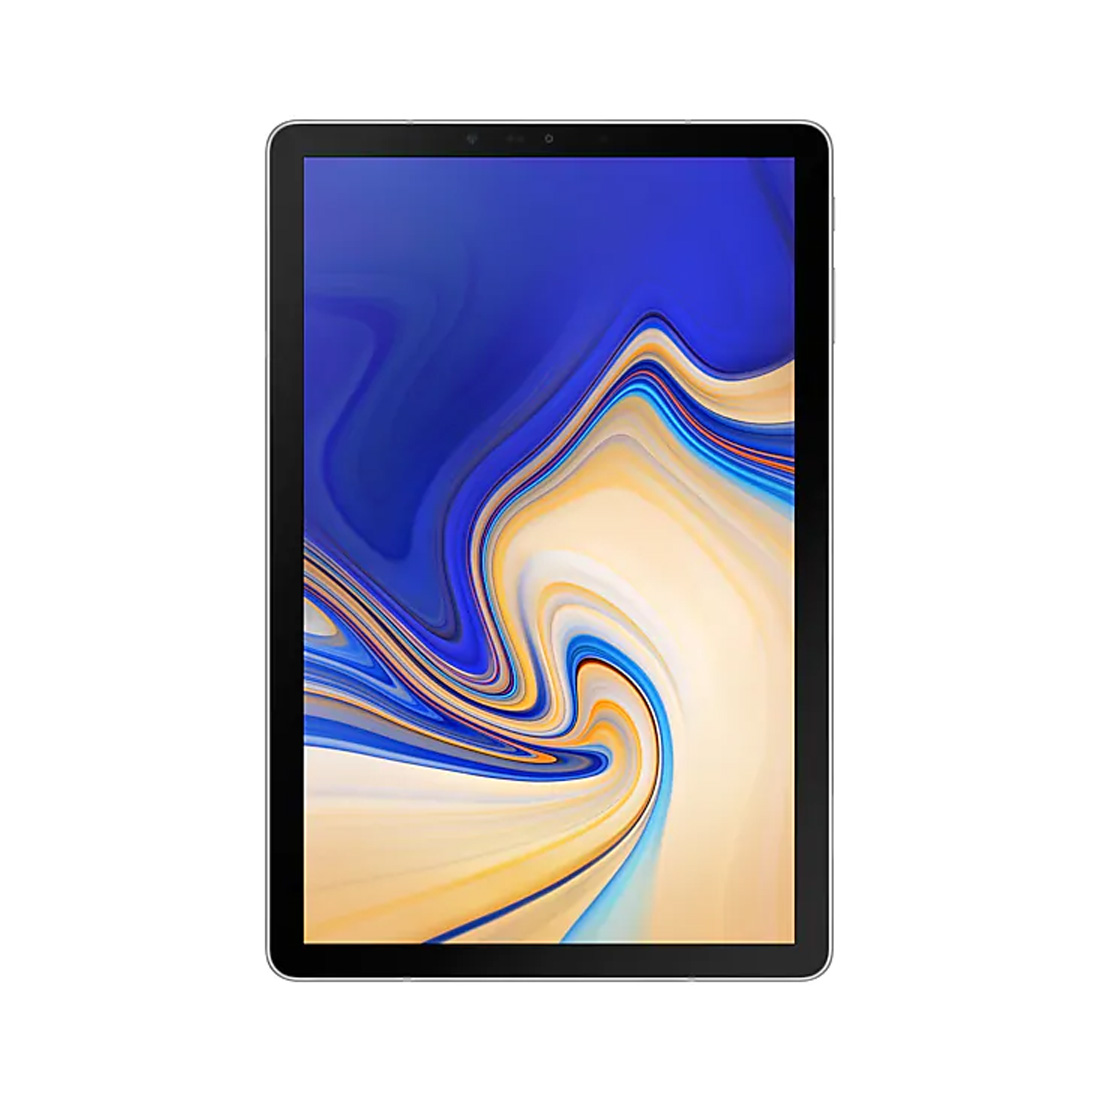 "Samsung Galaxy Tab S4 10.5"" 256GB Wi-Fi + 4G with S-Pen - Grey"